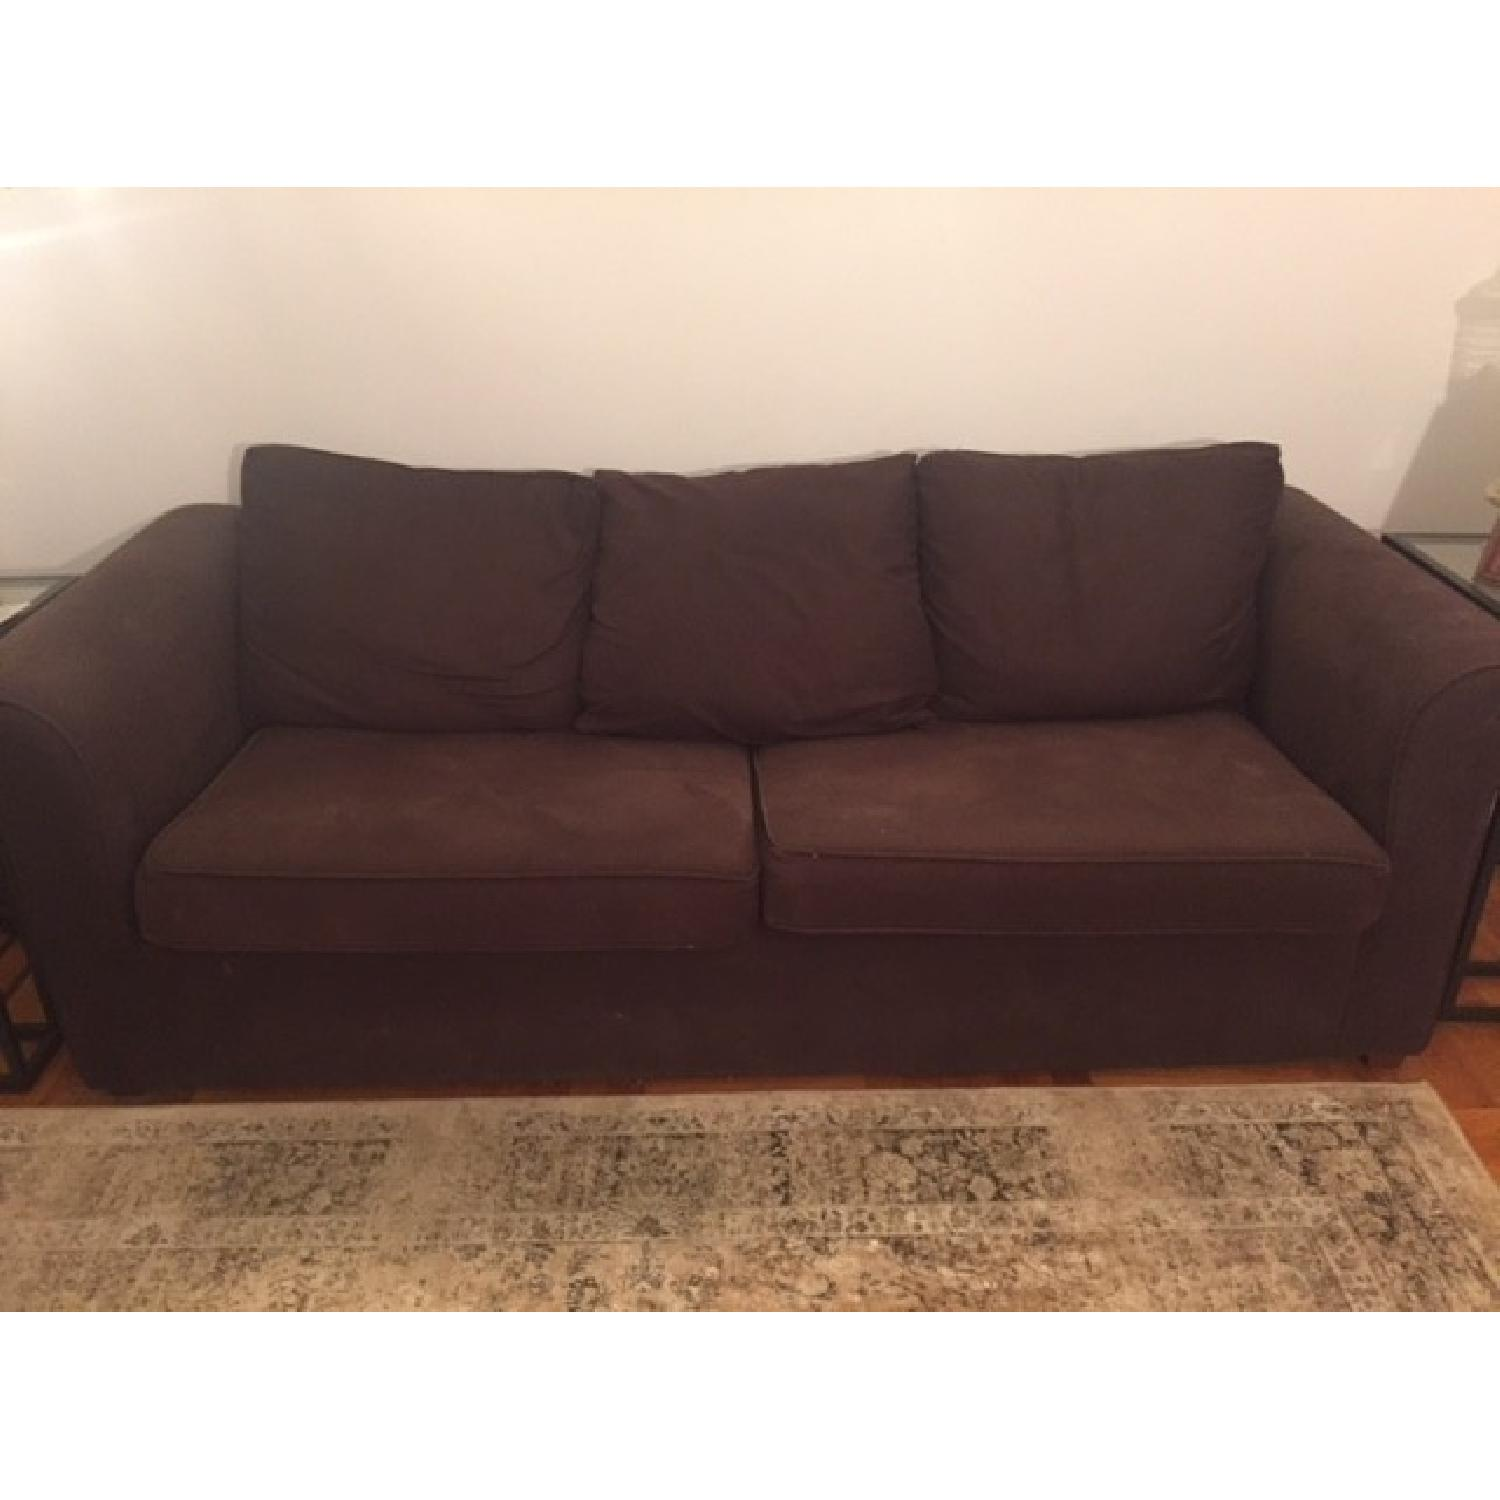 Ikea Couch - image-2